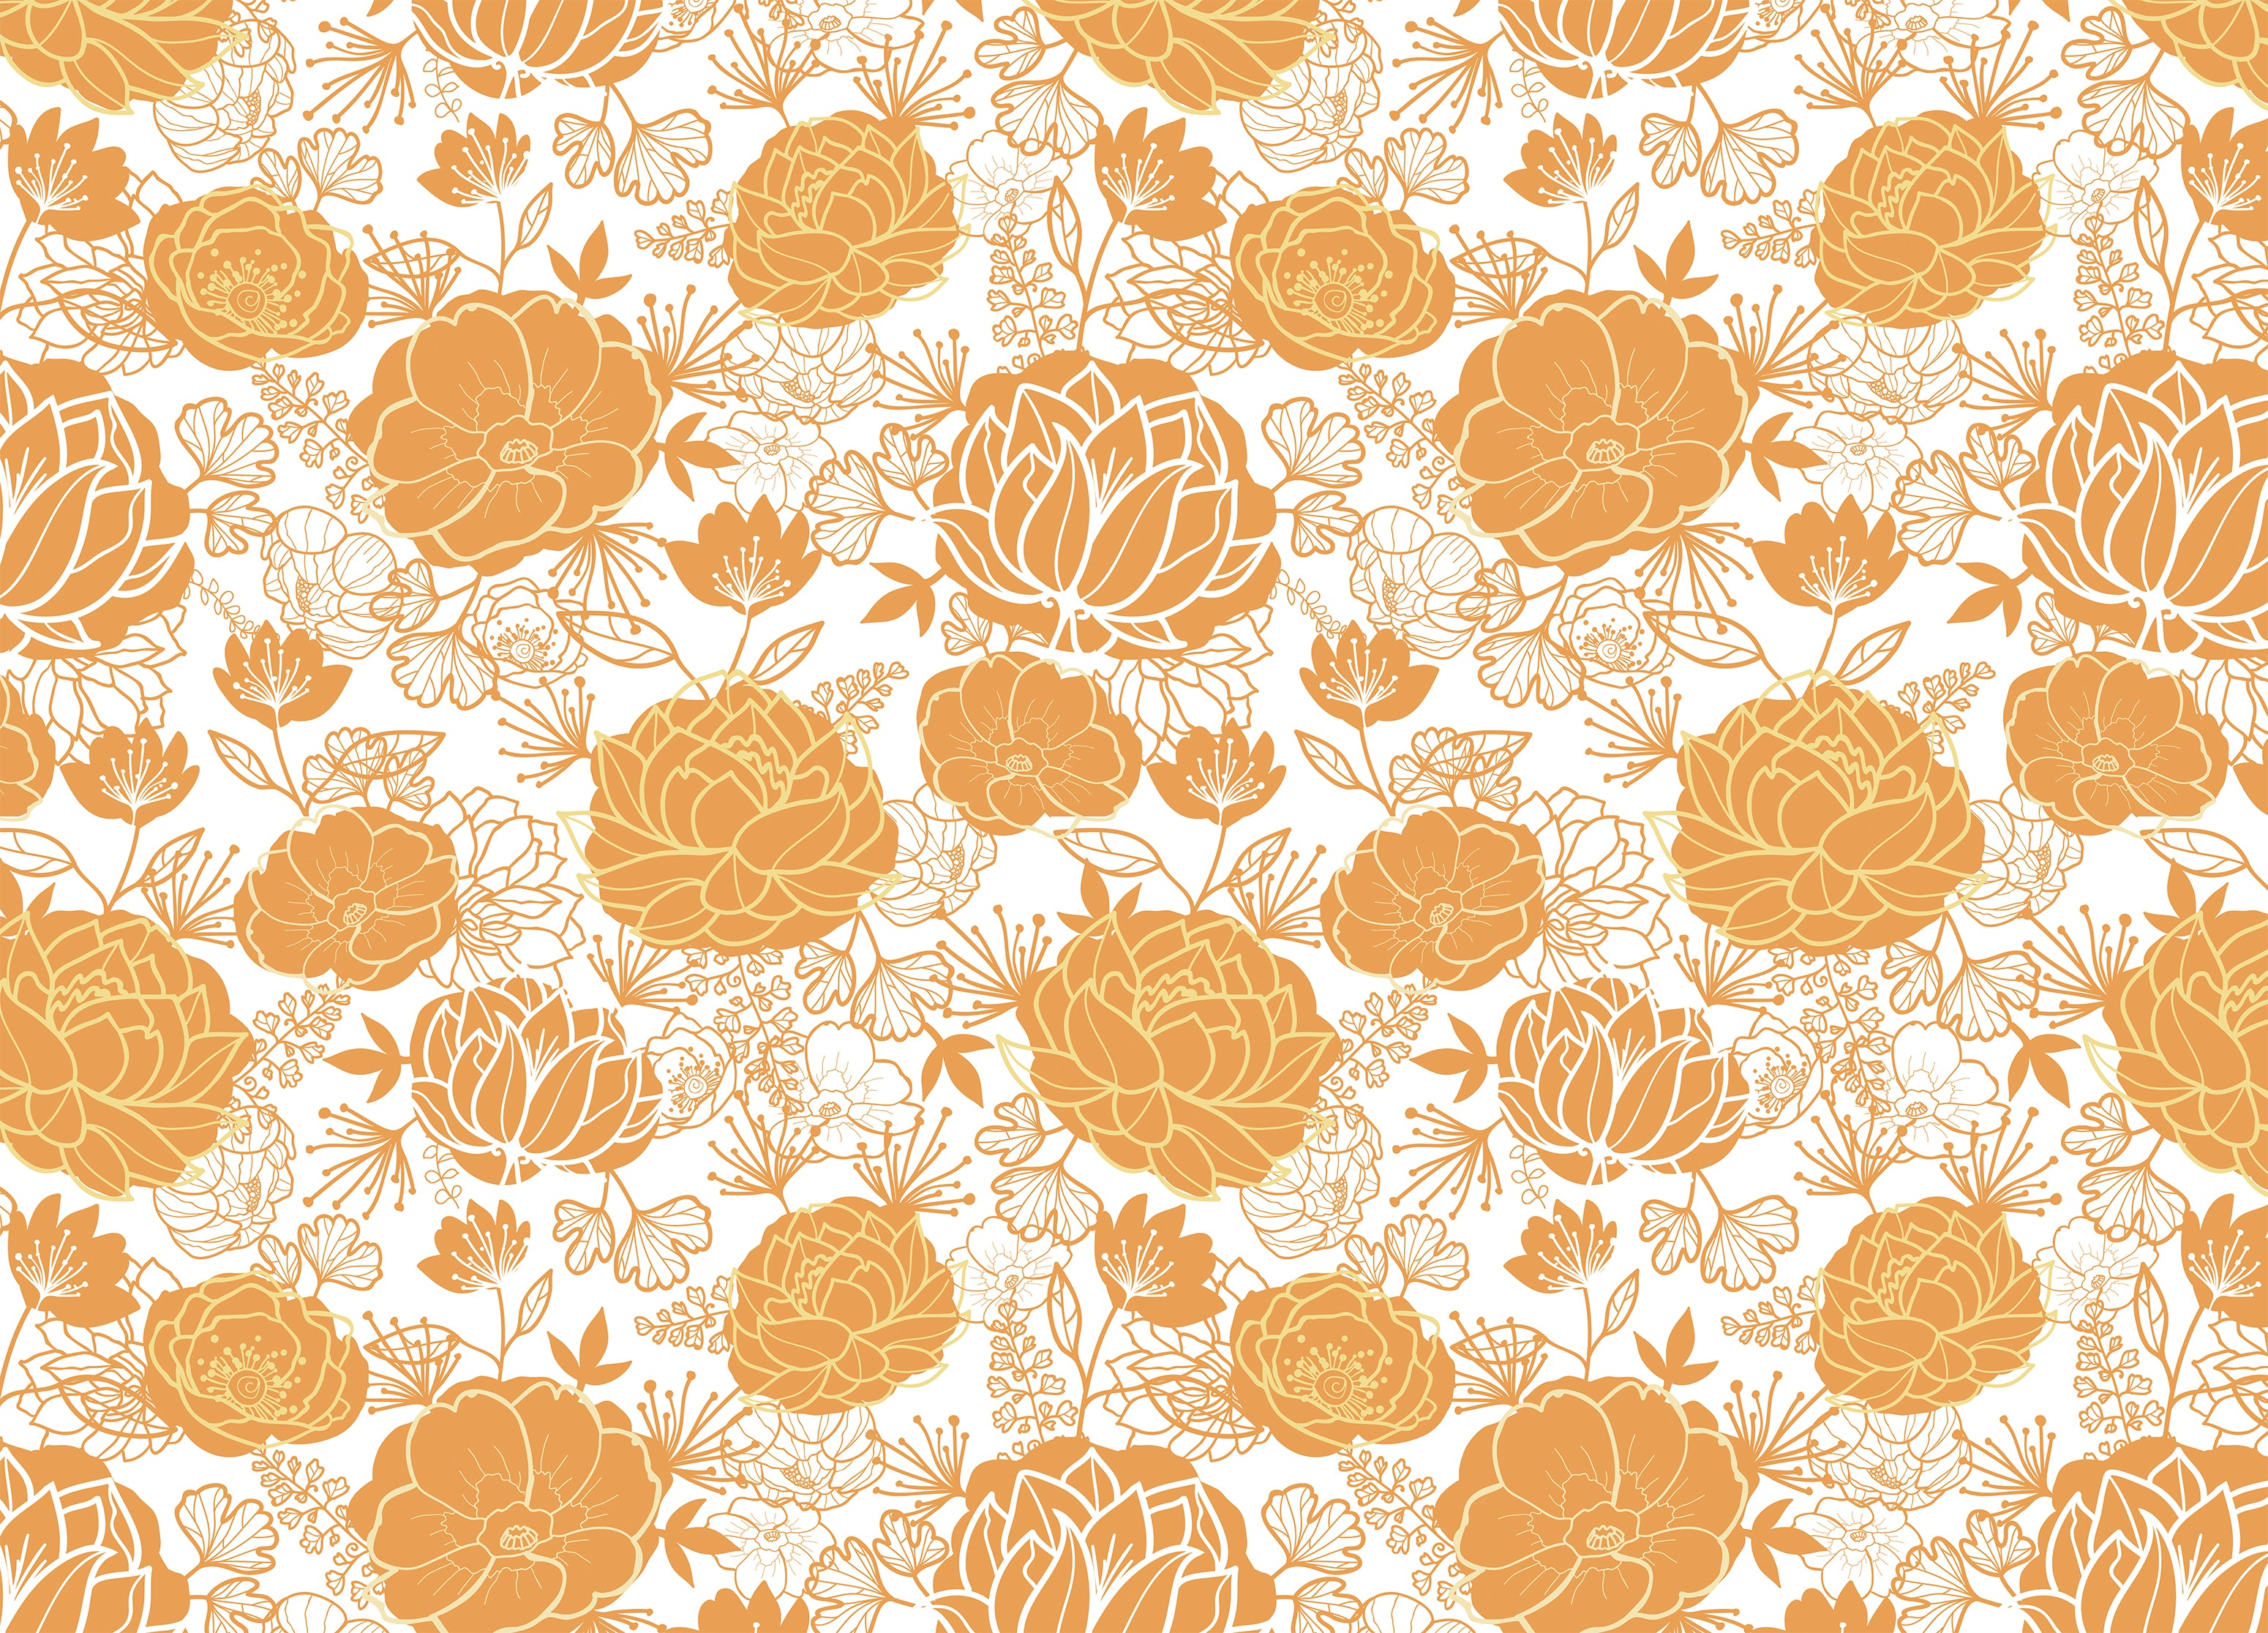 Titian Mural Burnt Orange Floral Wallpaper For Living Room Walls